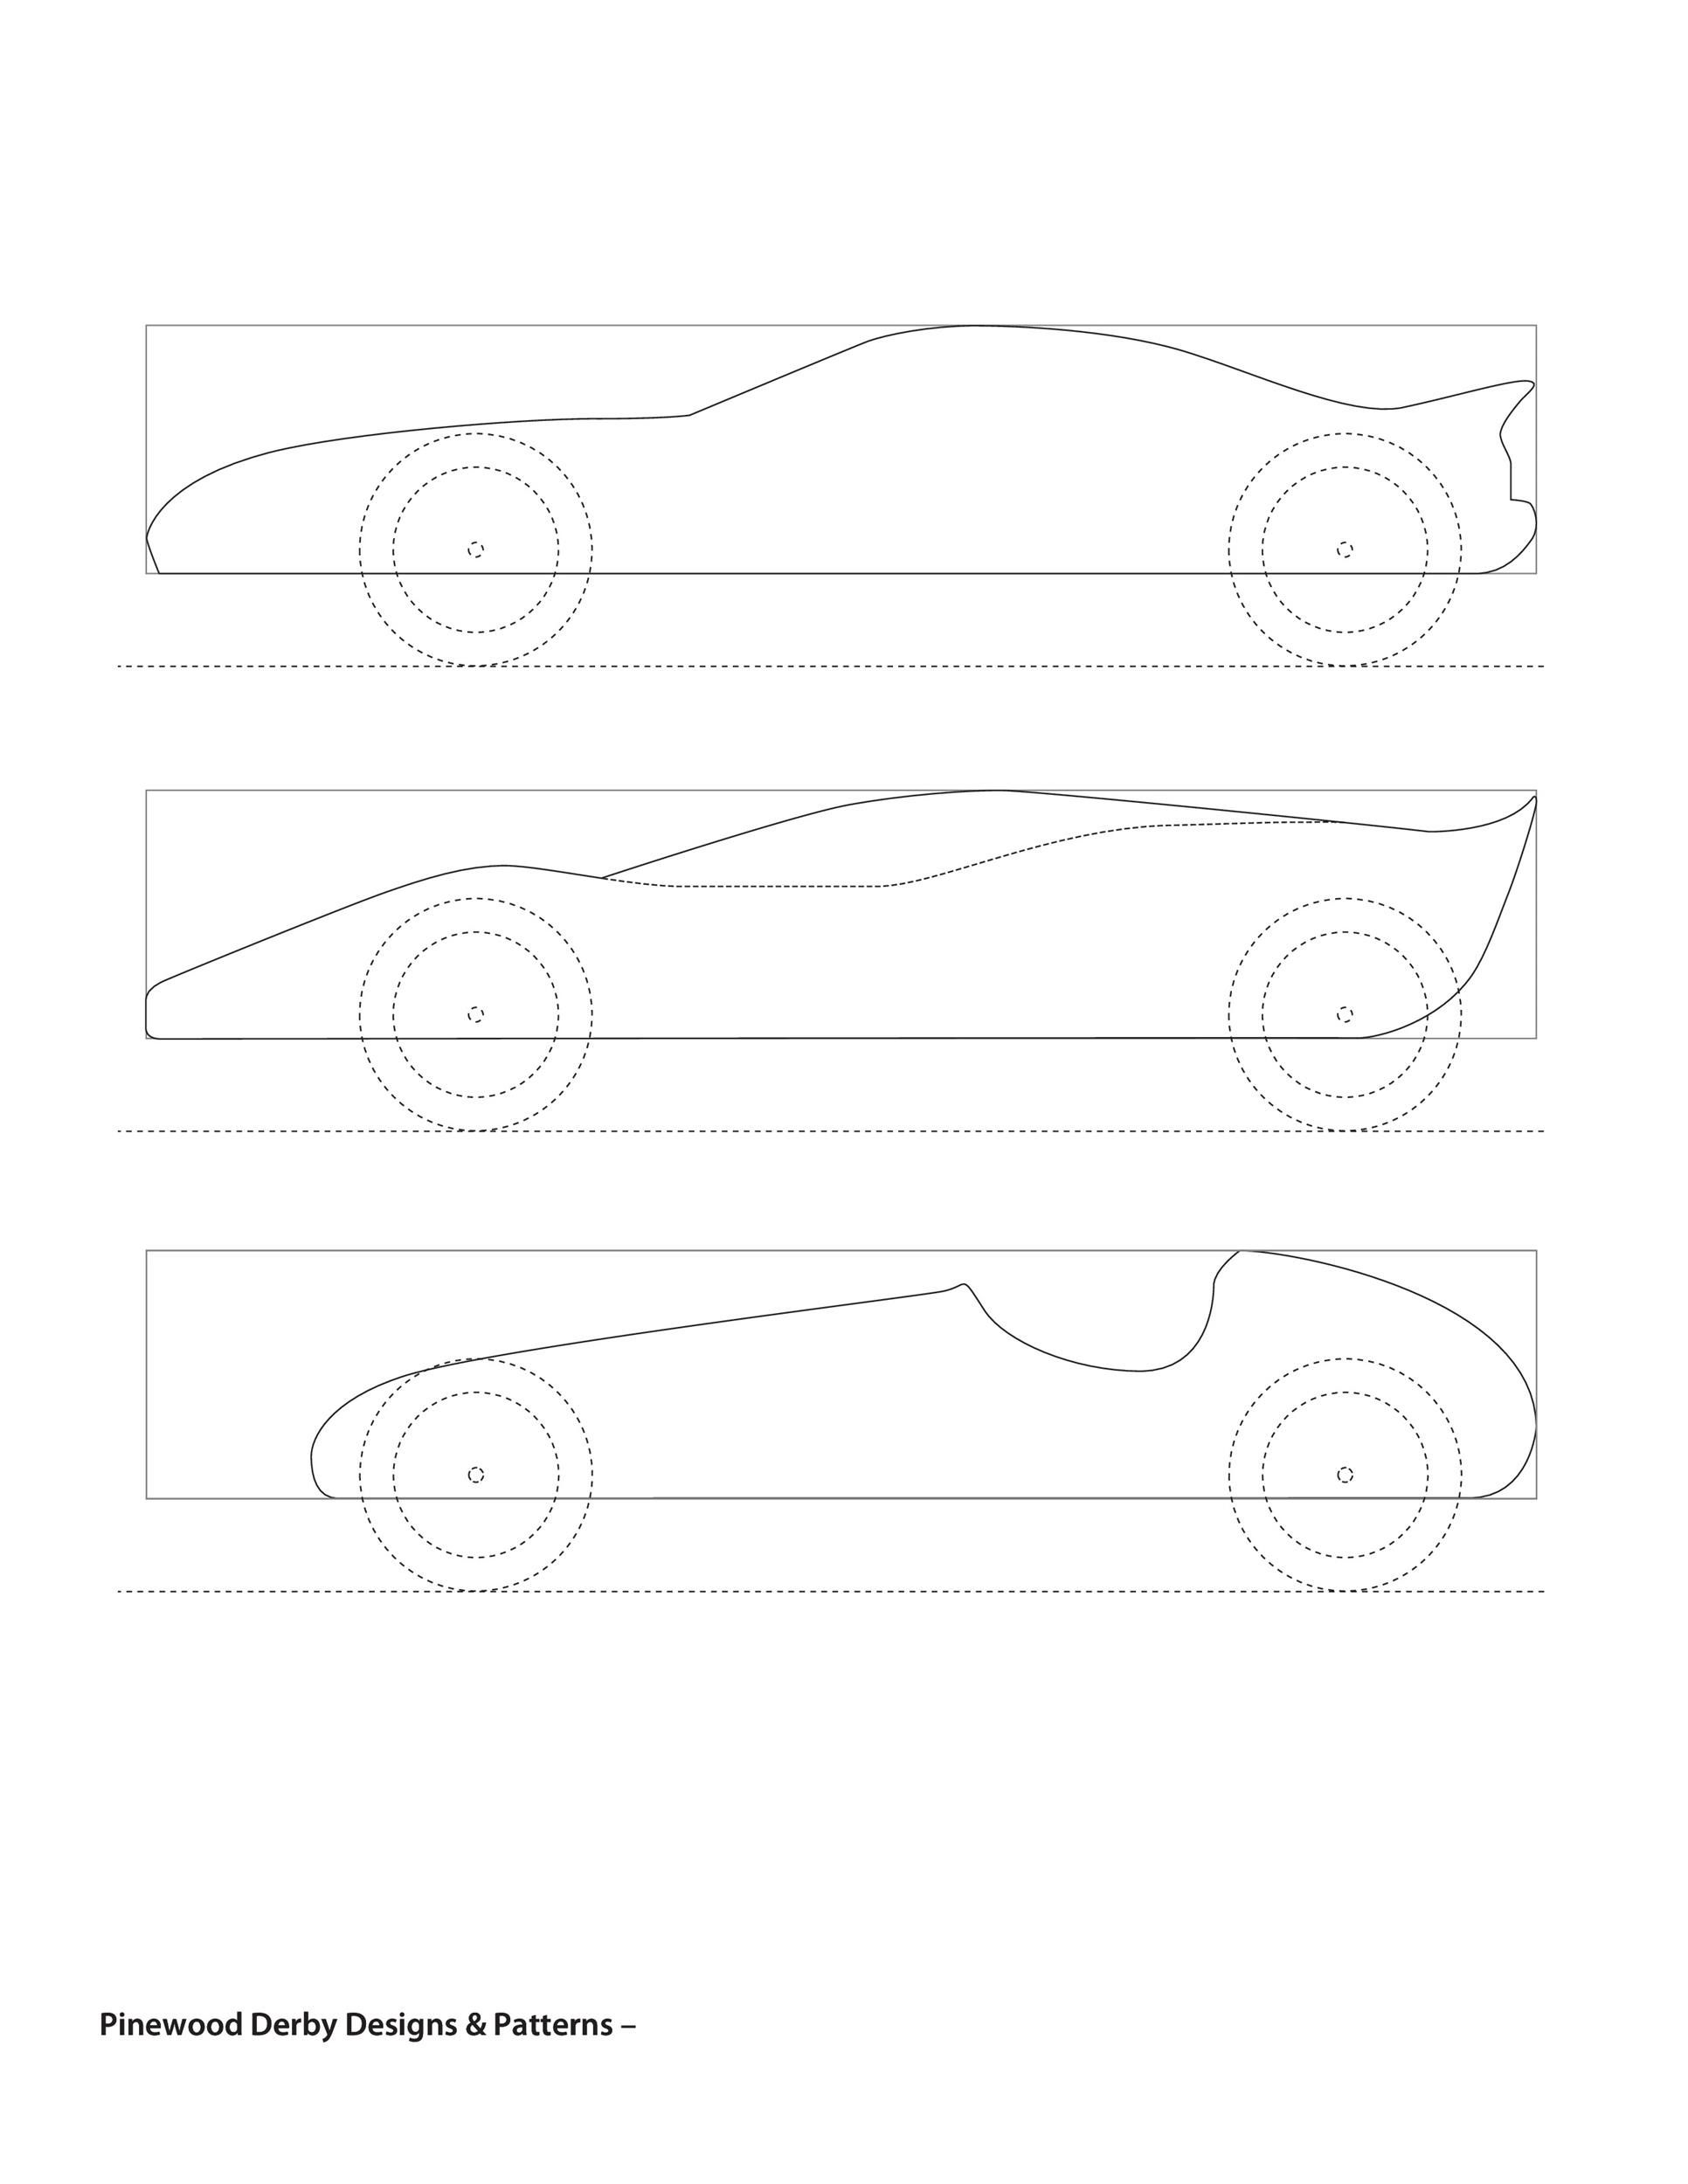 008 Dreaded Fast Pinewood Derby Car Template Image  Templates Design FastestFull